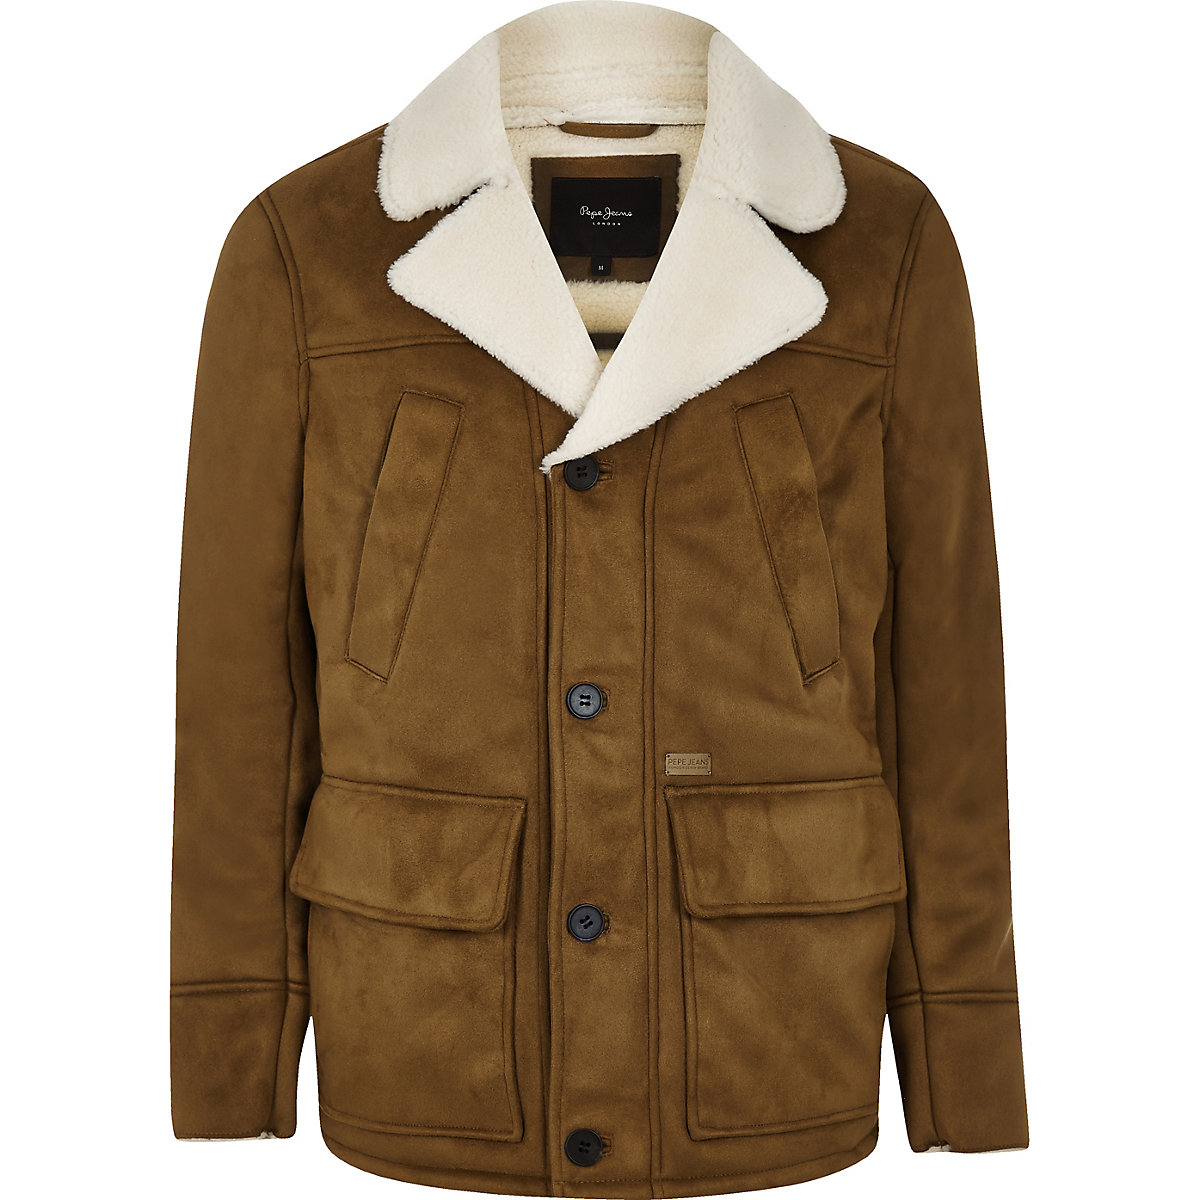 Pepe Jeans brown fleece line jacket